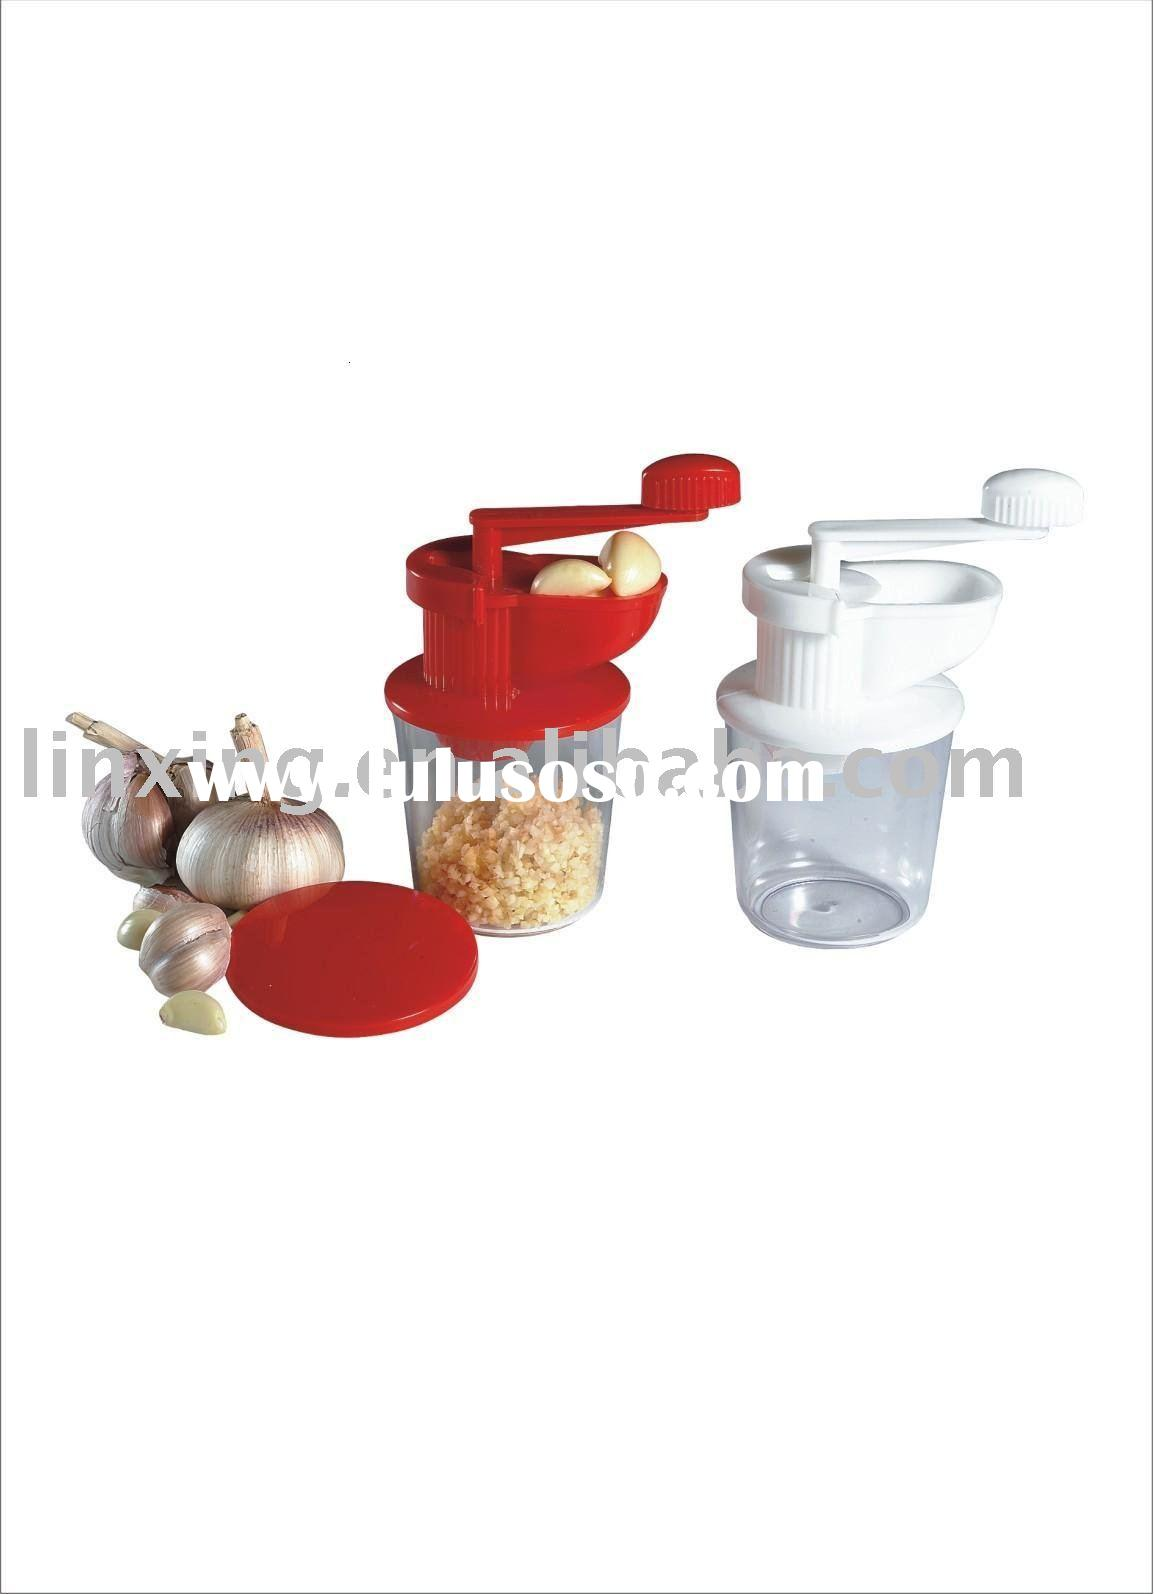 plastic handed garlic press ,Manual Blender ,food processor .Multi-function Blender